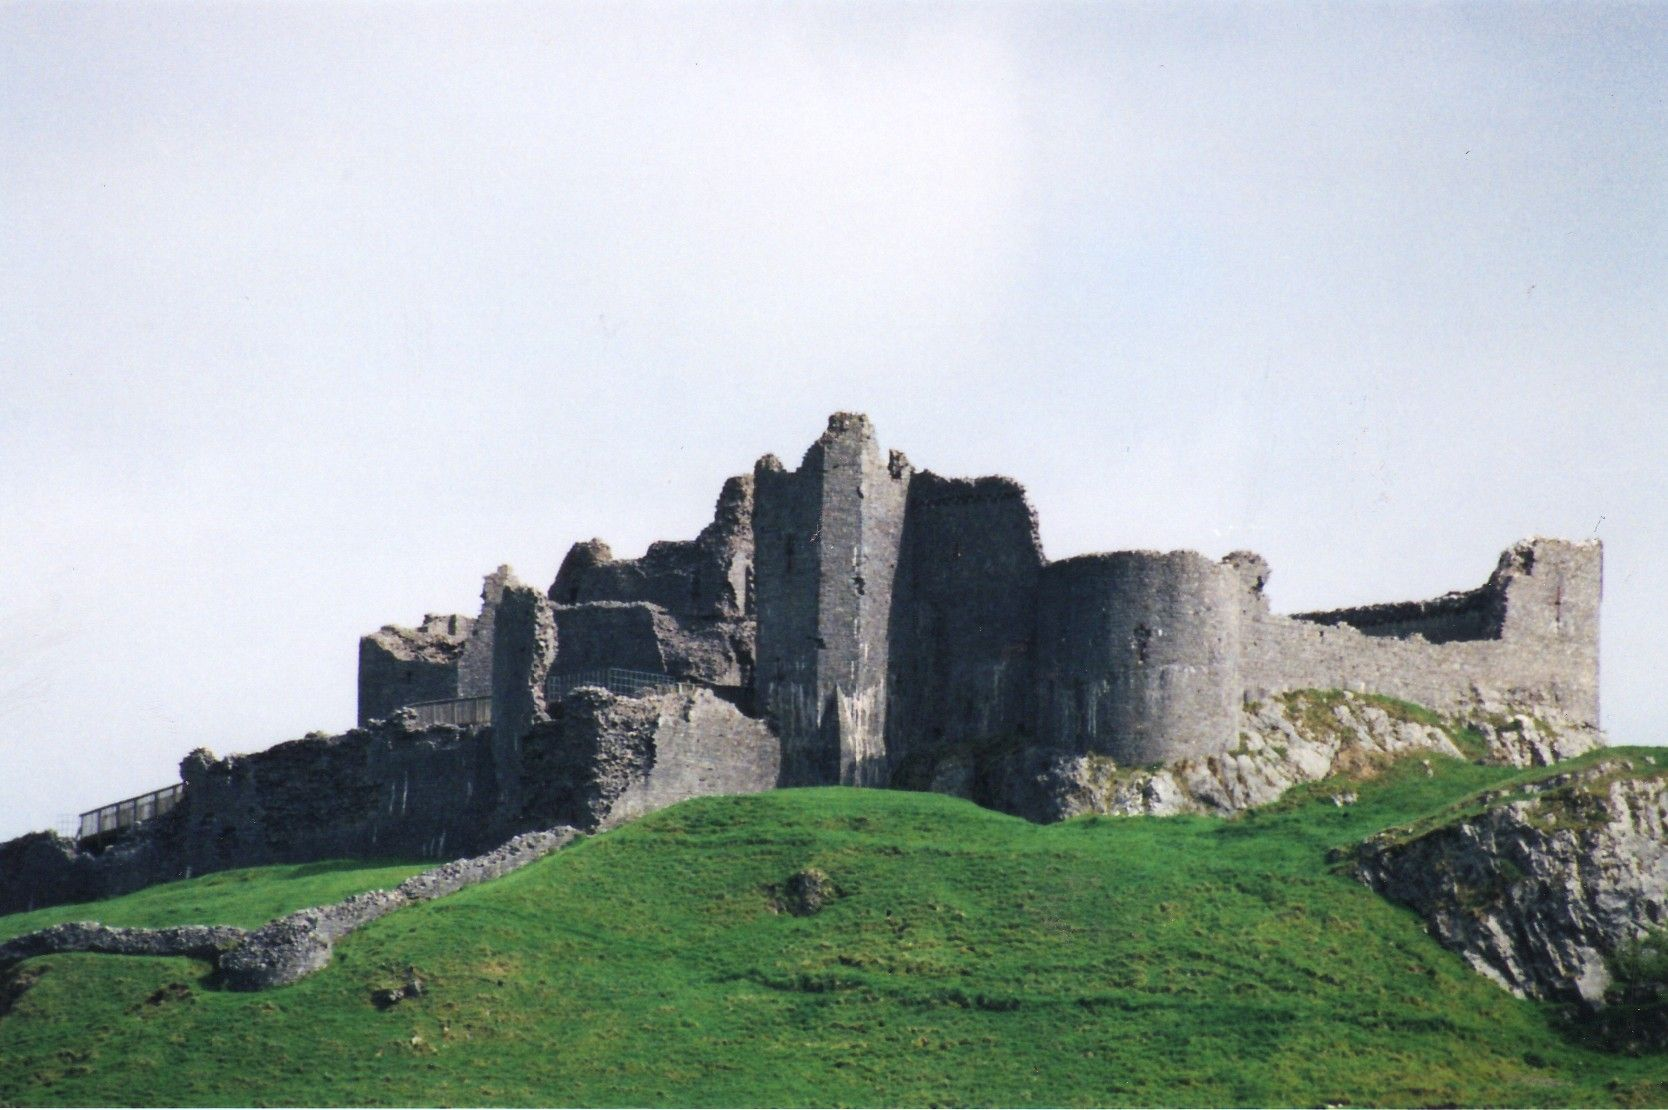 CARREG CENNEN CASTLE - A REMOTE WELSH CASTLE WITH A BRUTAL HISTORY IN THE BEAUTIFUL WELSH HILLS . OFTEN OVERLOOKED IT IS IMPRESSIVE AND FAMOUS IN THE HISTORY OF WALES. IT HAS A SECRET CAVE ENTRANCE